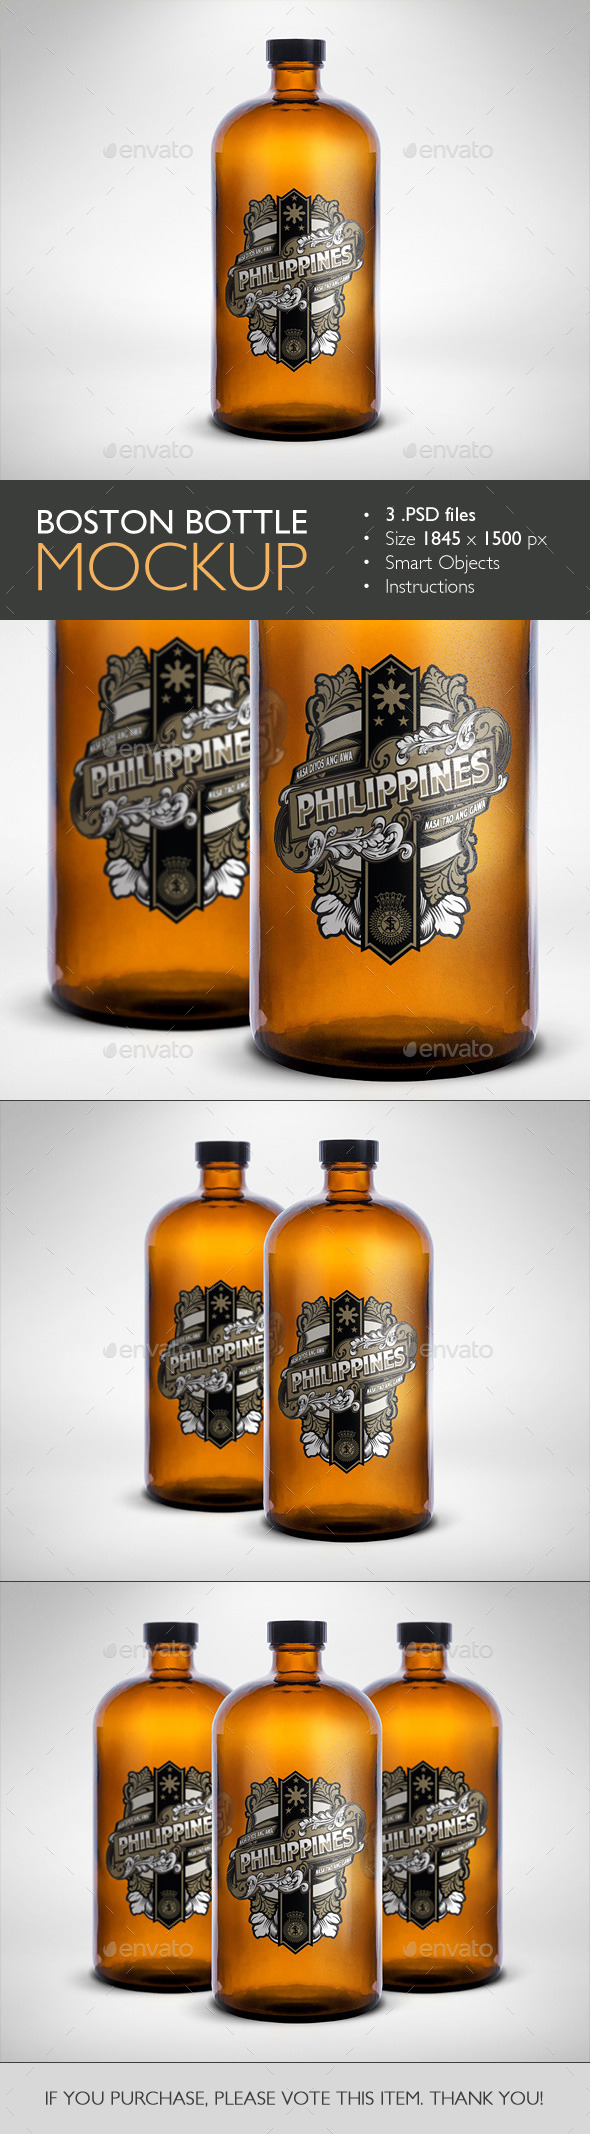 Boston Round Bottle Mockup - Food and Drink Packaging